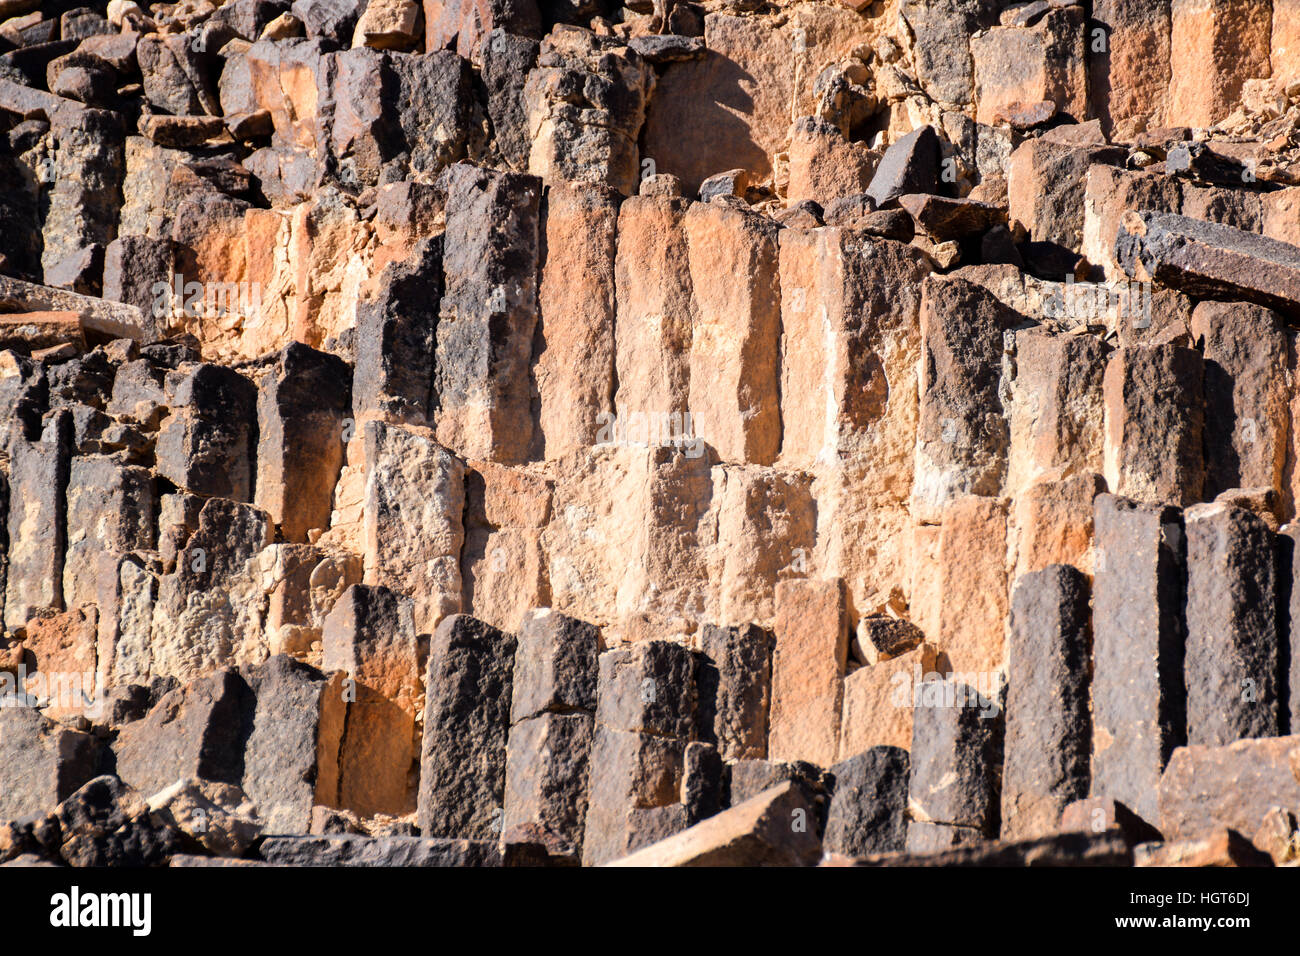 Ancient stone wall texture for design or as background - Stock Image